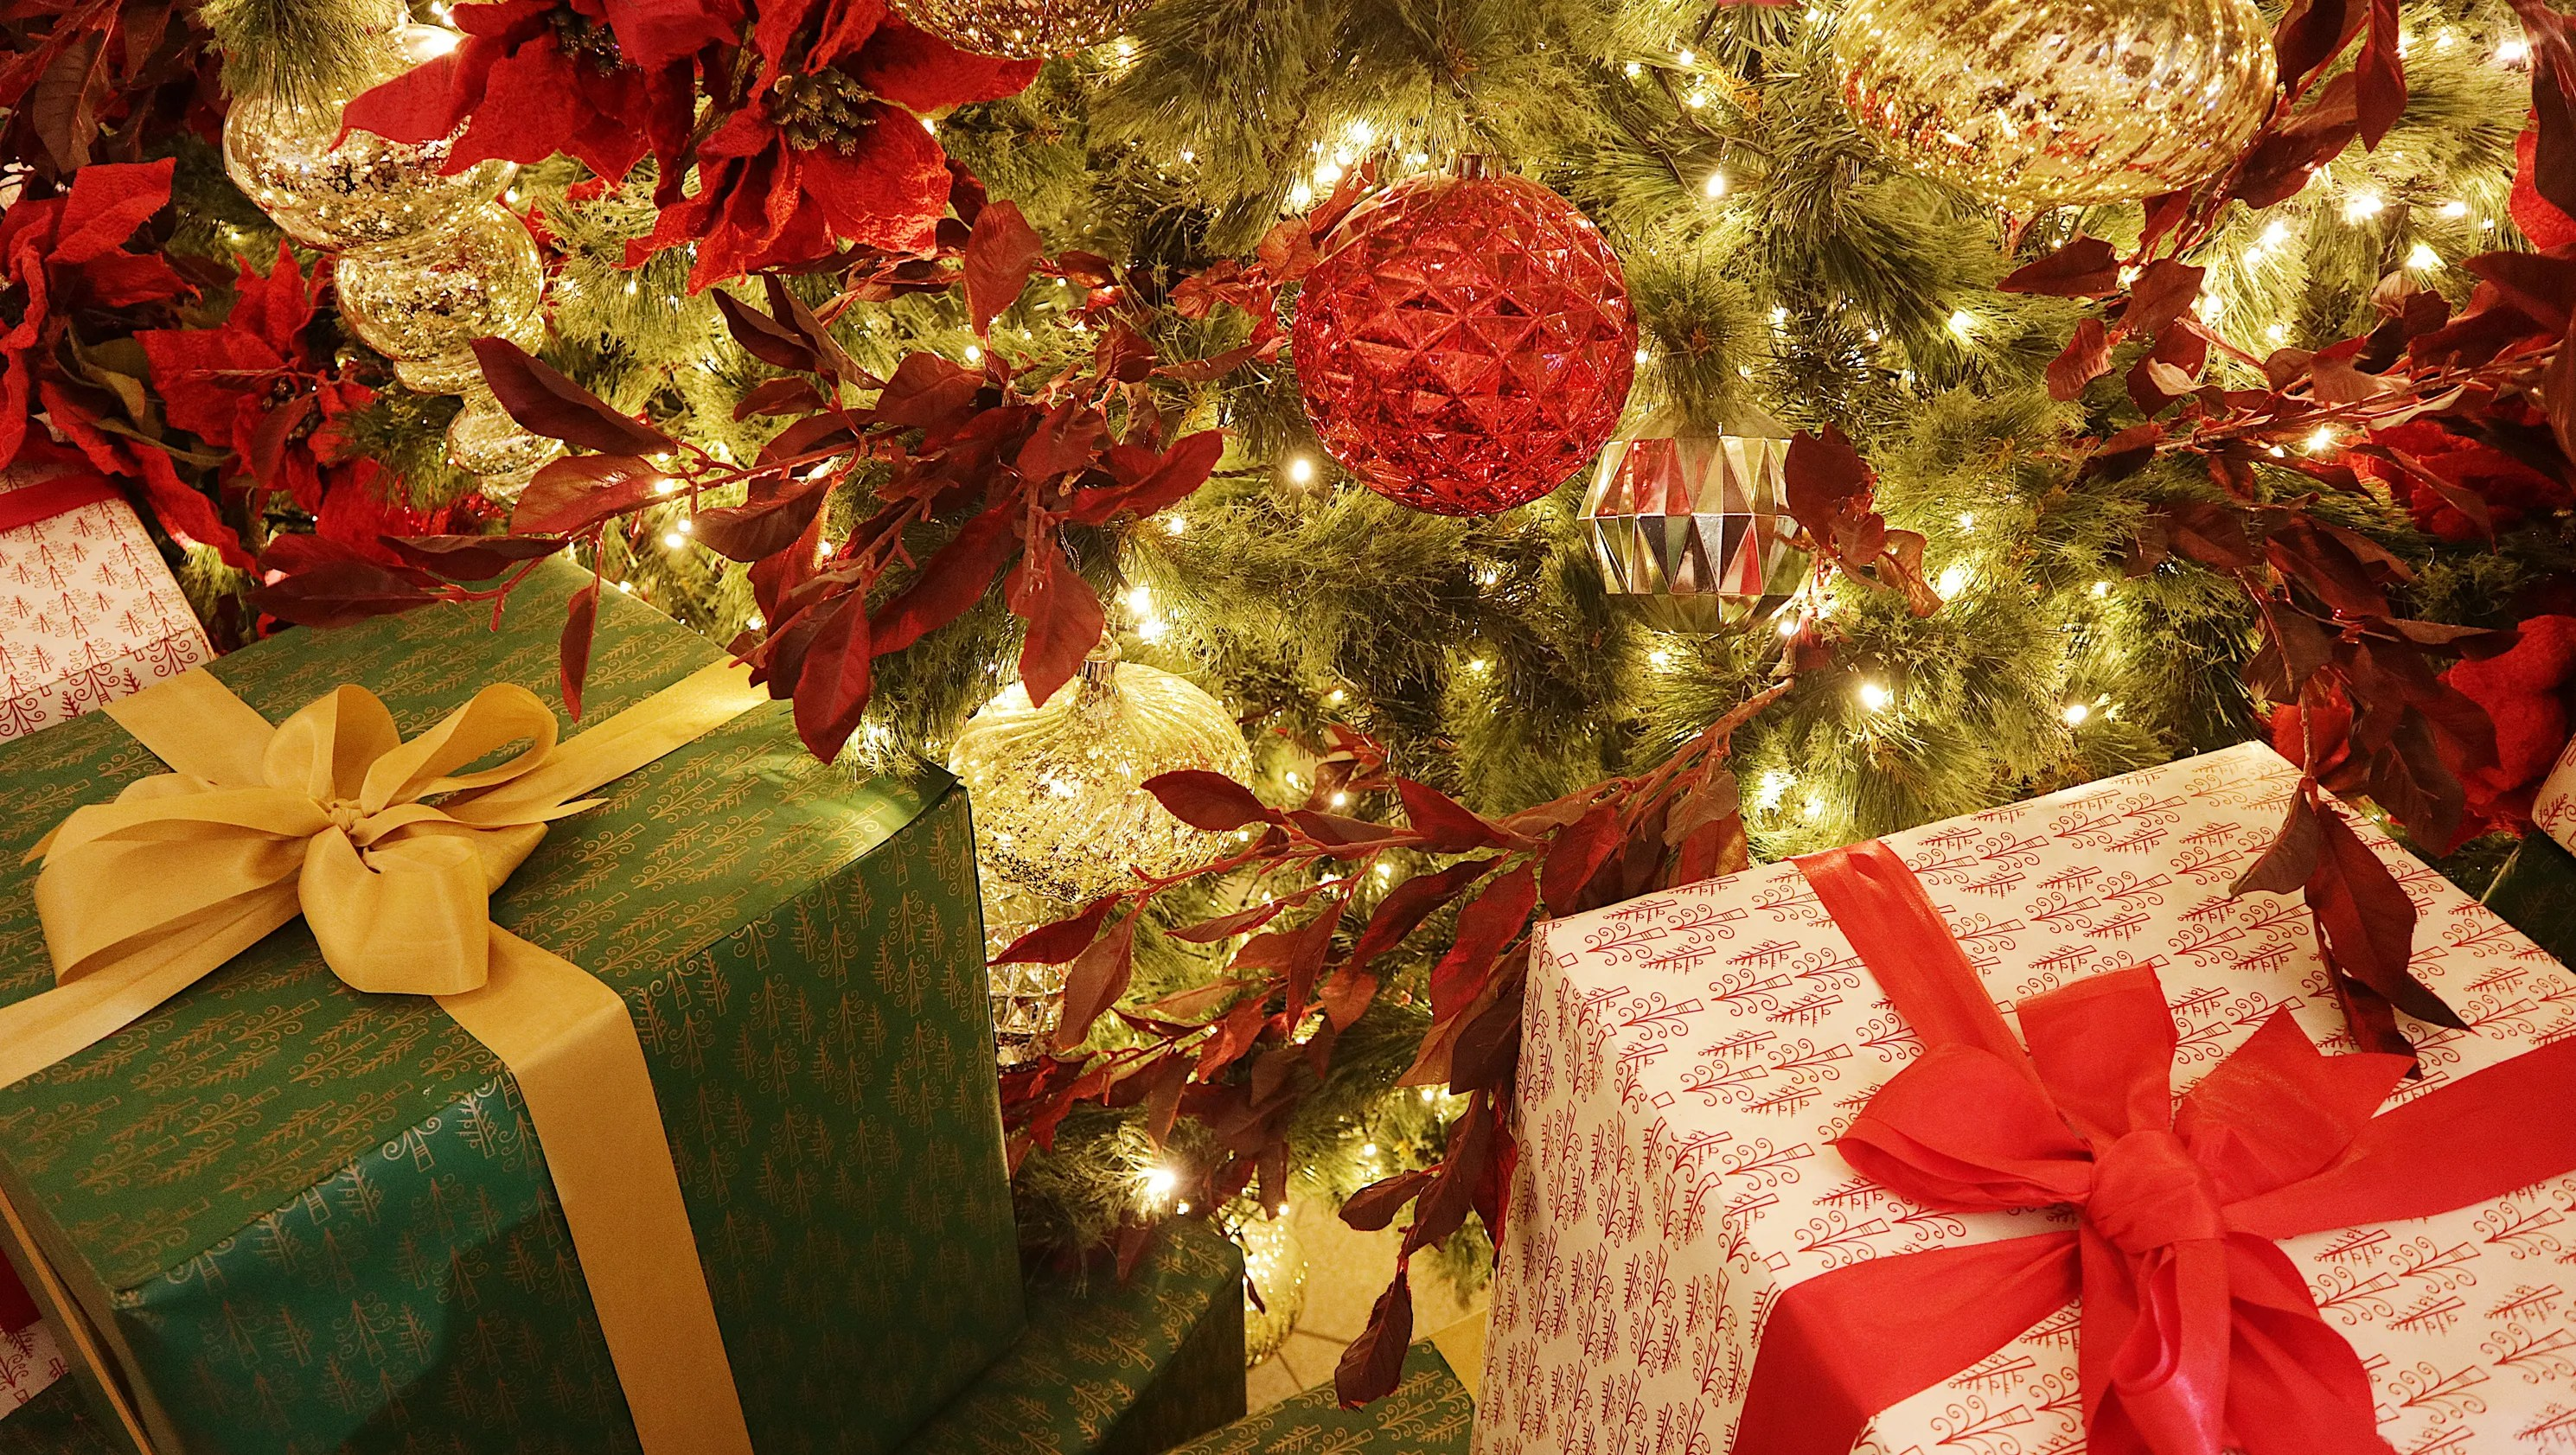 Pasko Na Naman Christmas Traditions In The Philippines